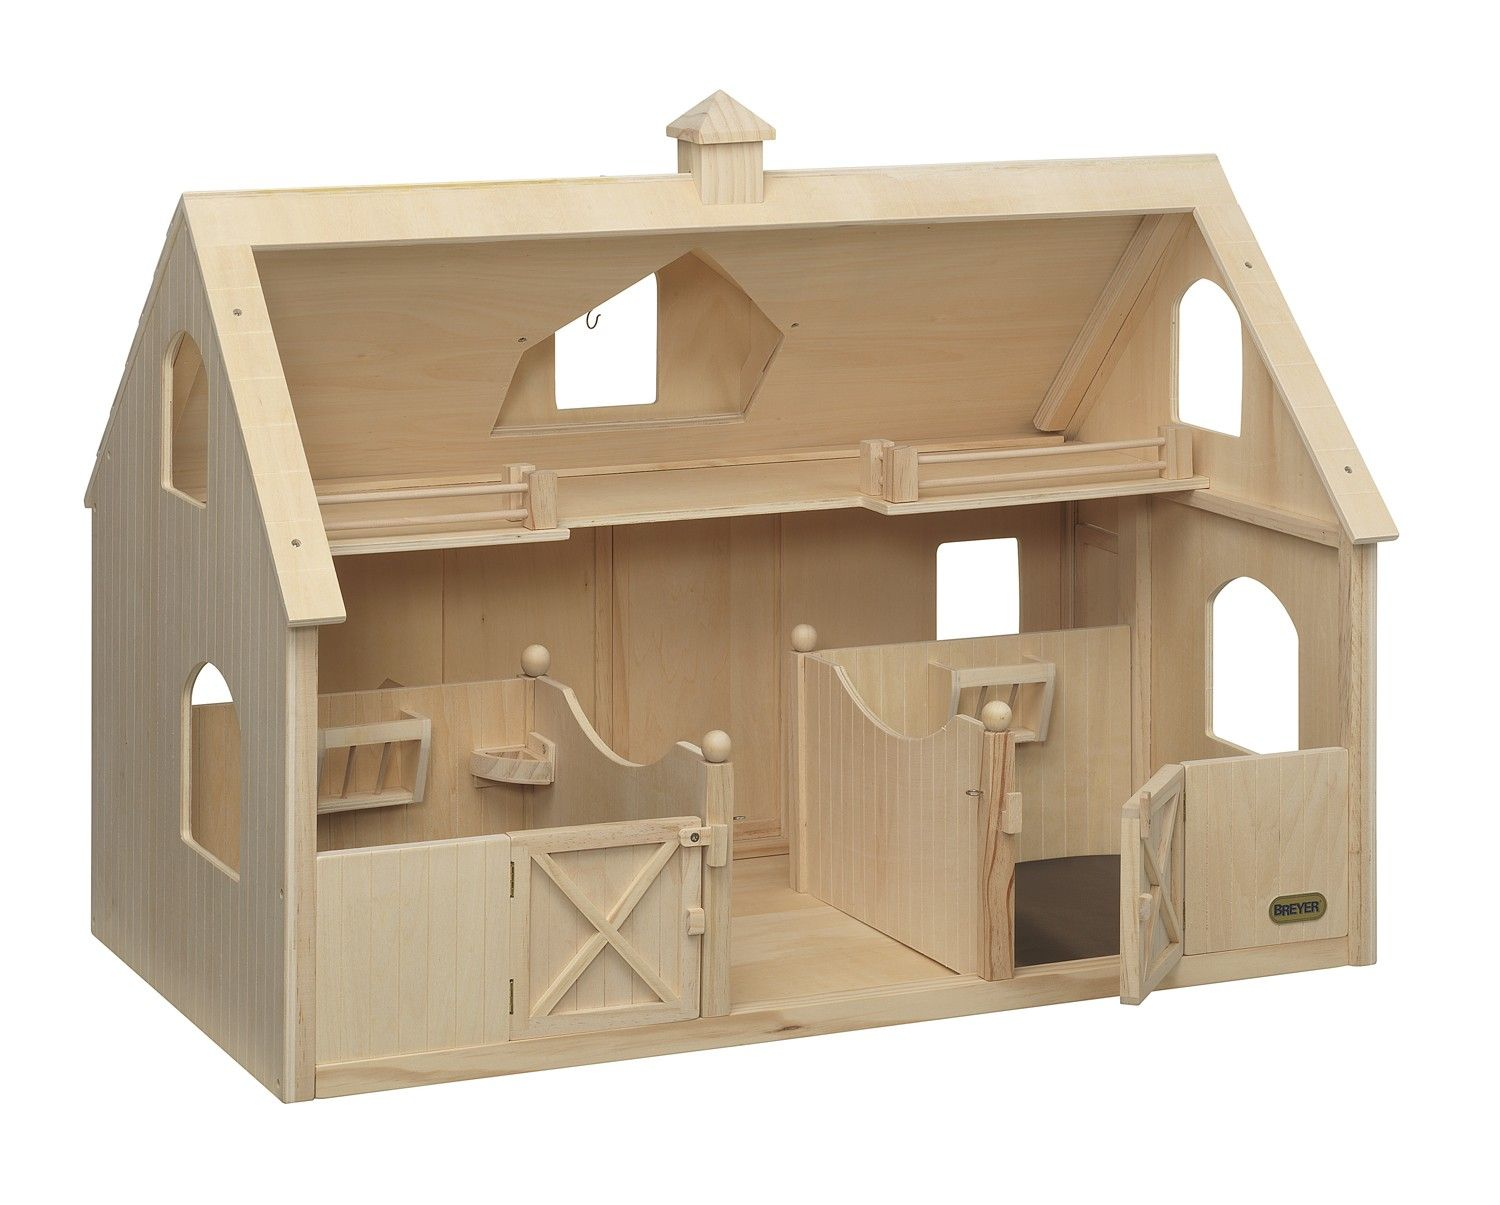 Pin by Qyv on Backyard | Toy barn, Windmill woodworking ...